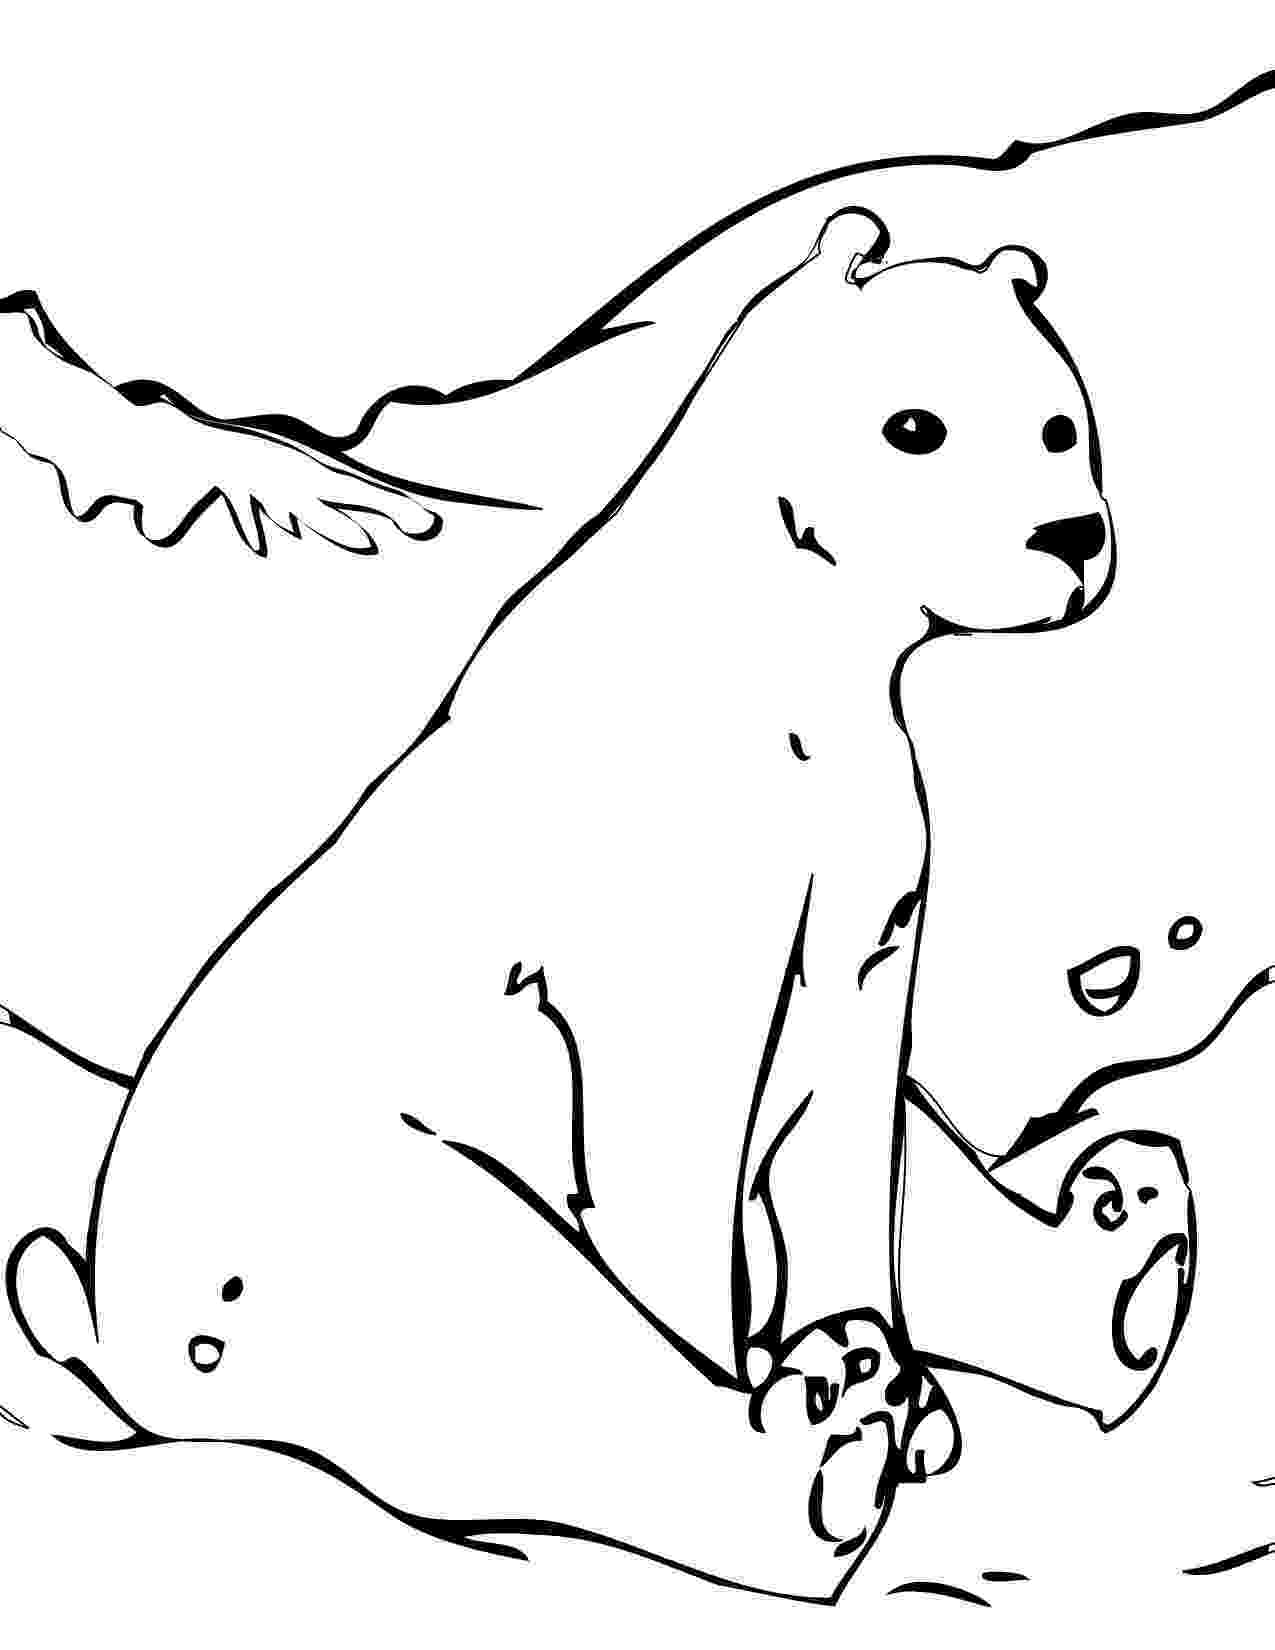 pictures of polar bears to color free printable polar bear coloring pages for kids pictures color polar of bears to